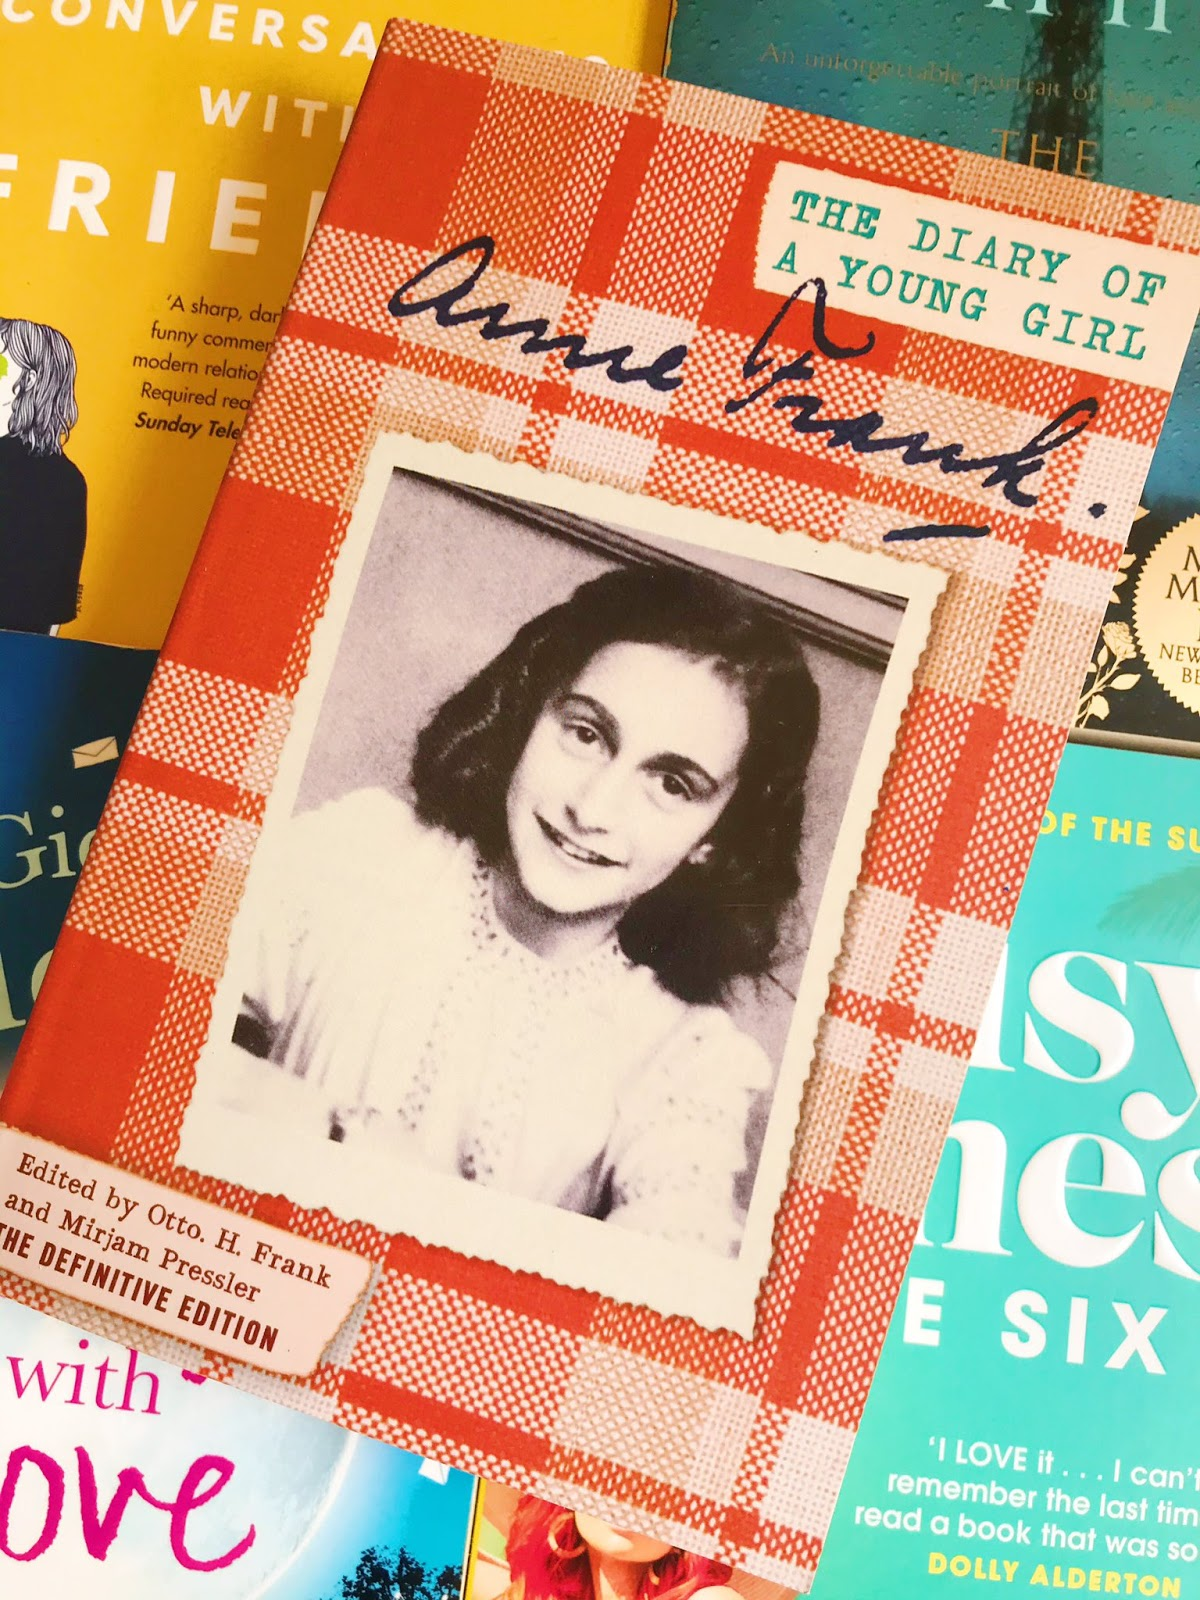 The Diary of a Young Girl by Anne Frank laid on top of 4 other books